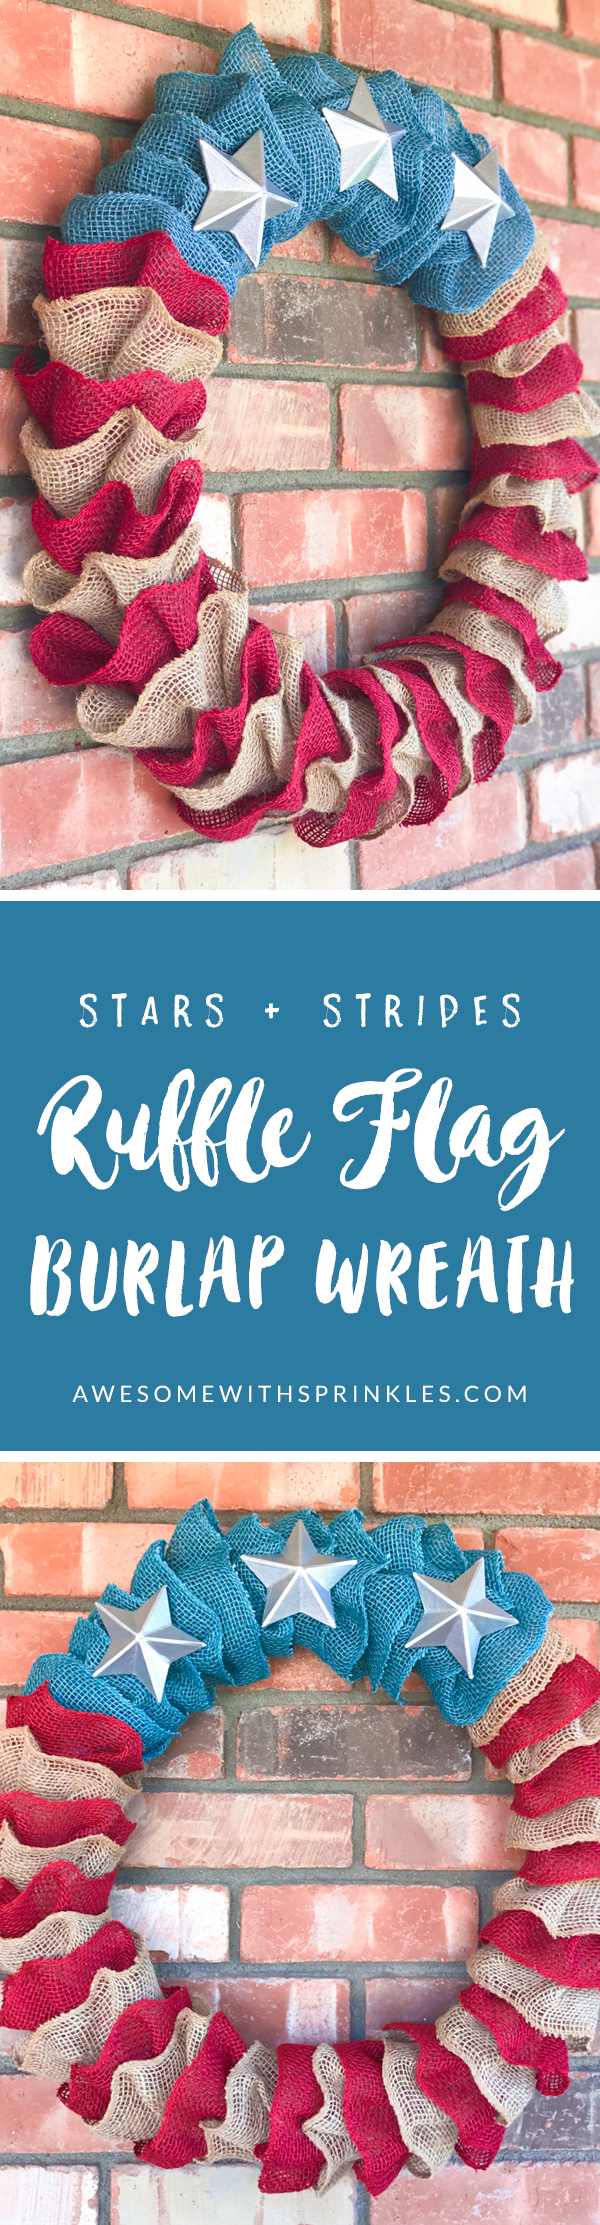 Stars + Stripes DIY Pottery Barn Copycat Flag Ruffle Wreath for Fourth of July! | Awesome with Sprinkles